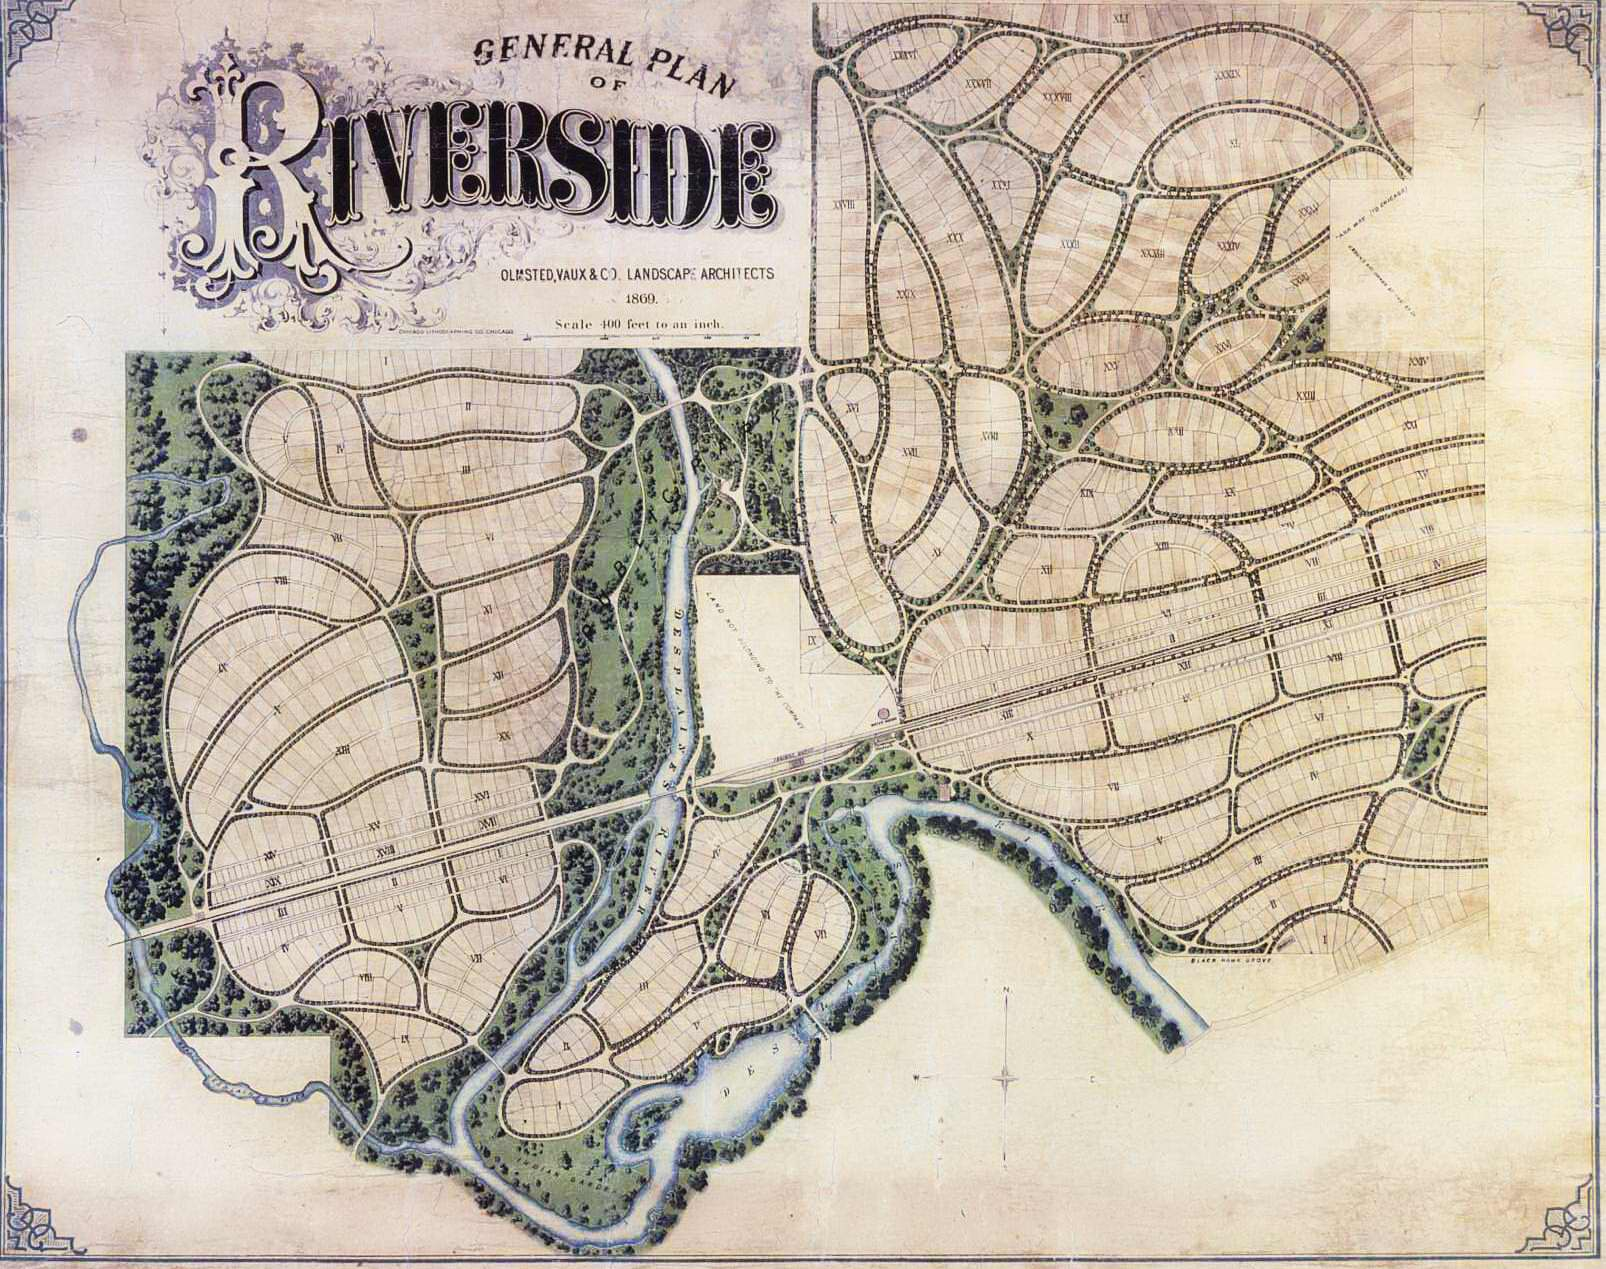 Village of Riverside Landscape Map includes the river, forest and land sections.